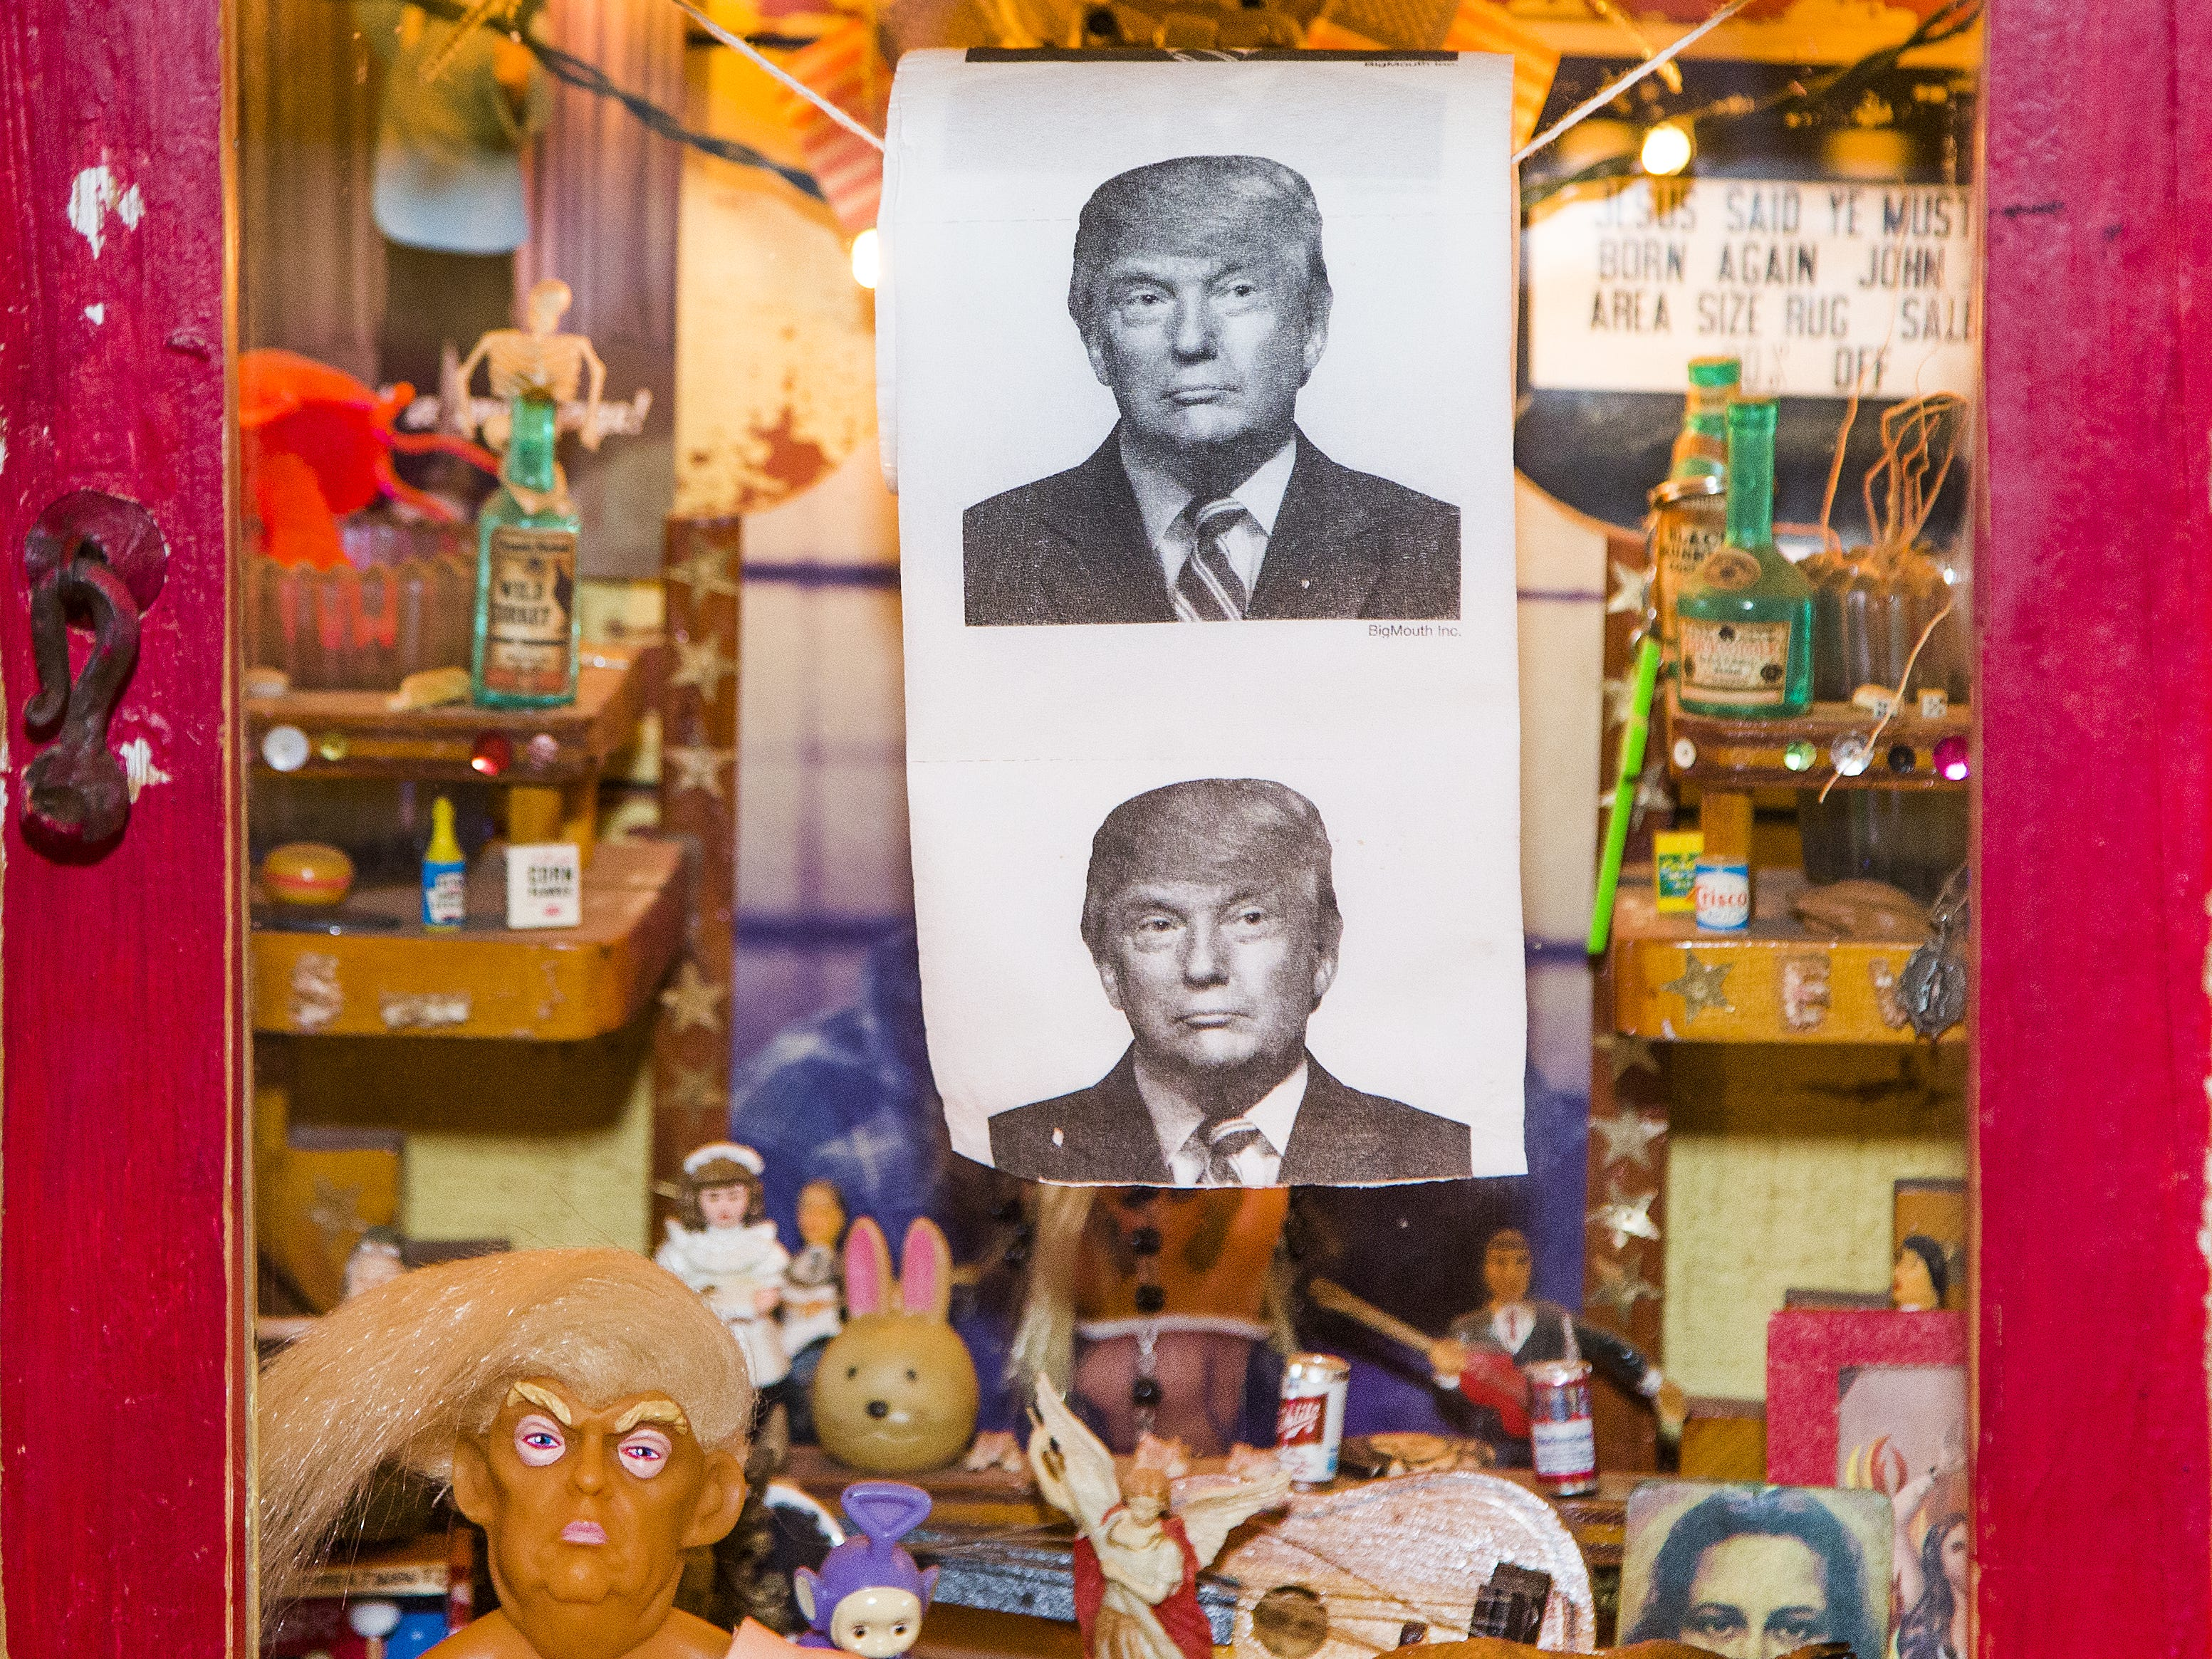 An interesting display case with religious, political and cultural artifacts stands against a wall at the restaurant Rancho Pinot, in Scottsdale, Tuesday, Oct. 16, 2018.